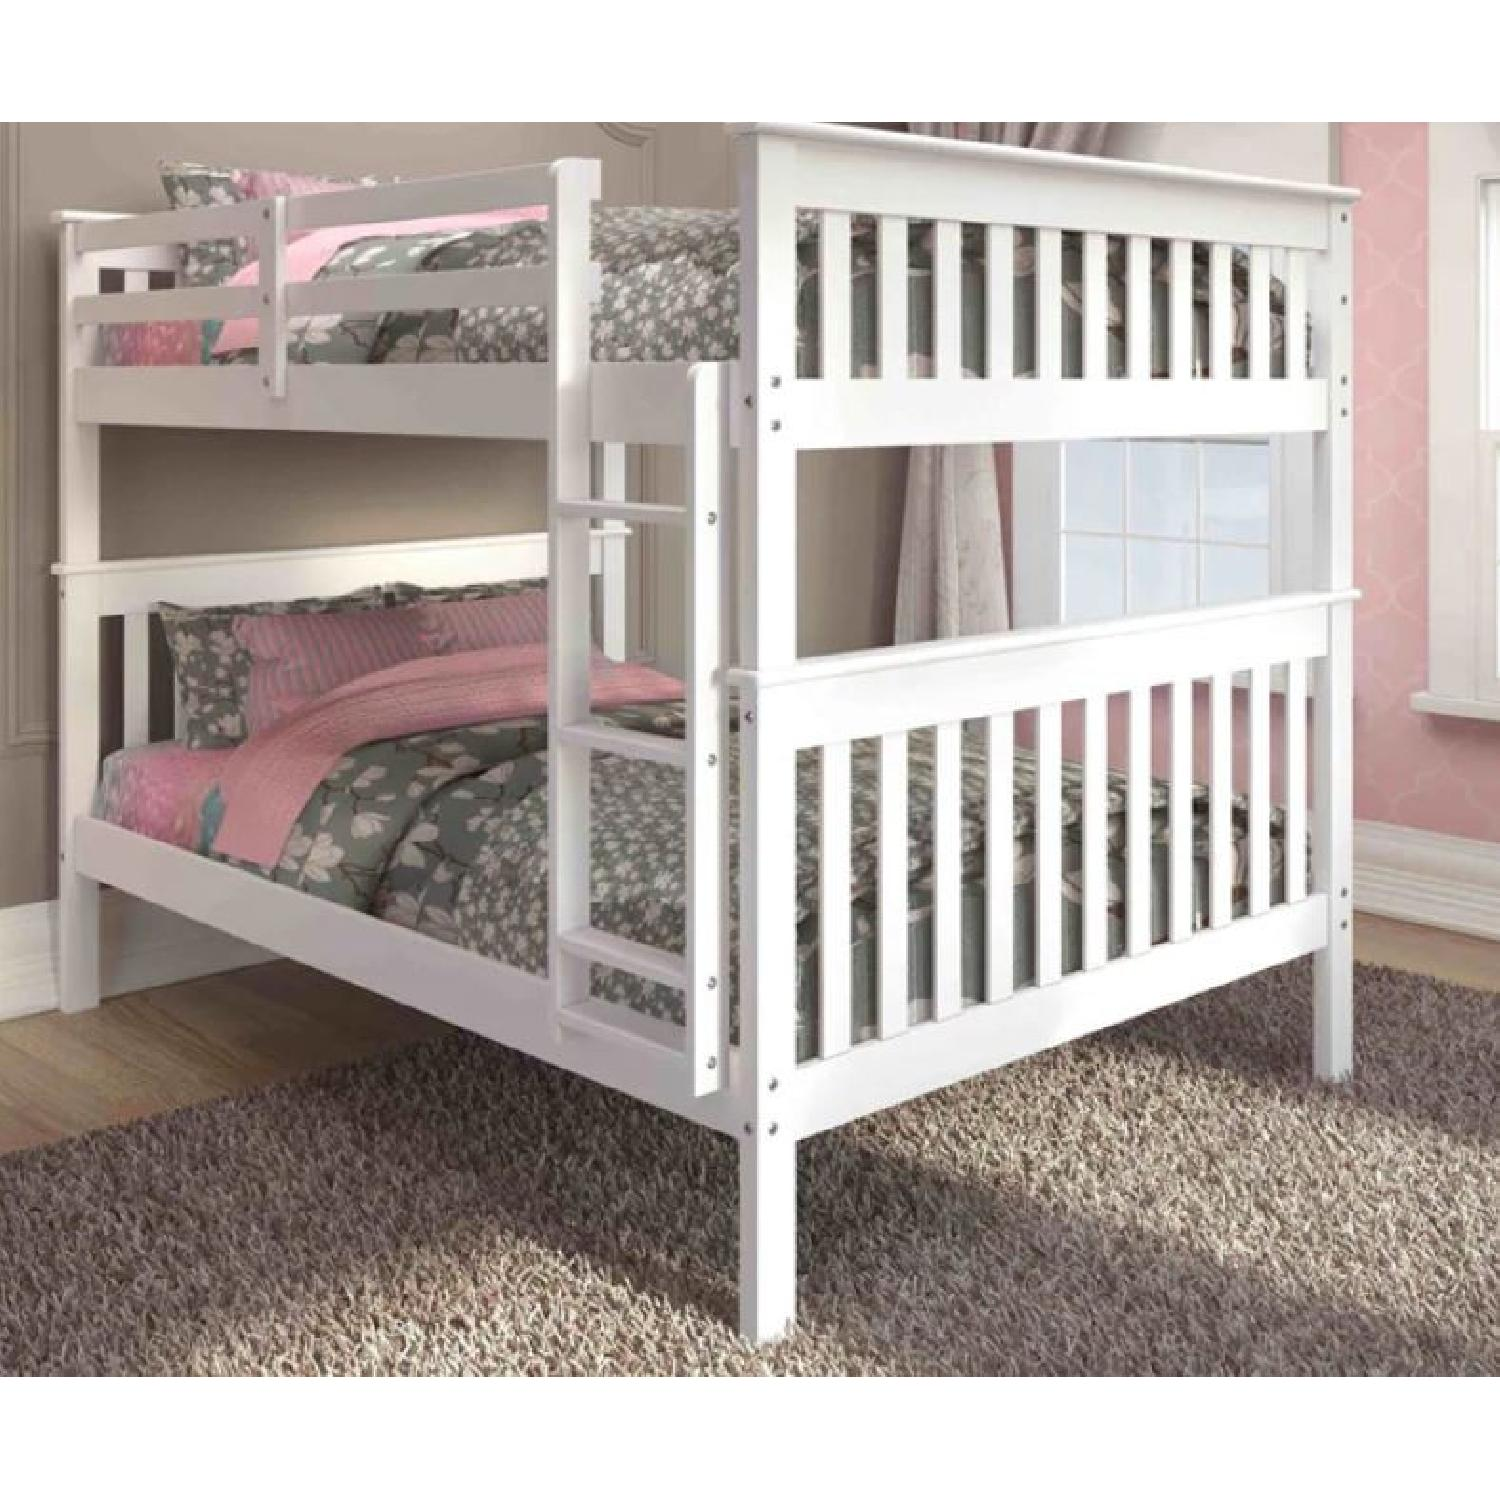 Donco Kids Mission Full Size Bunk Bed - image-1